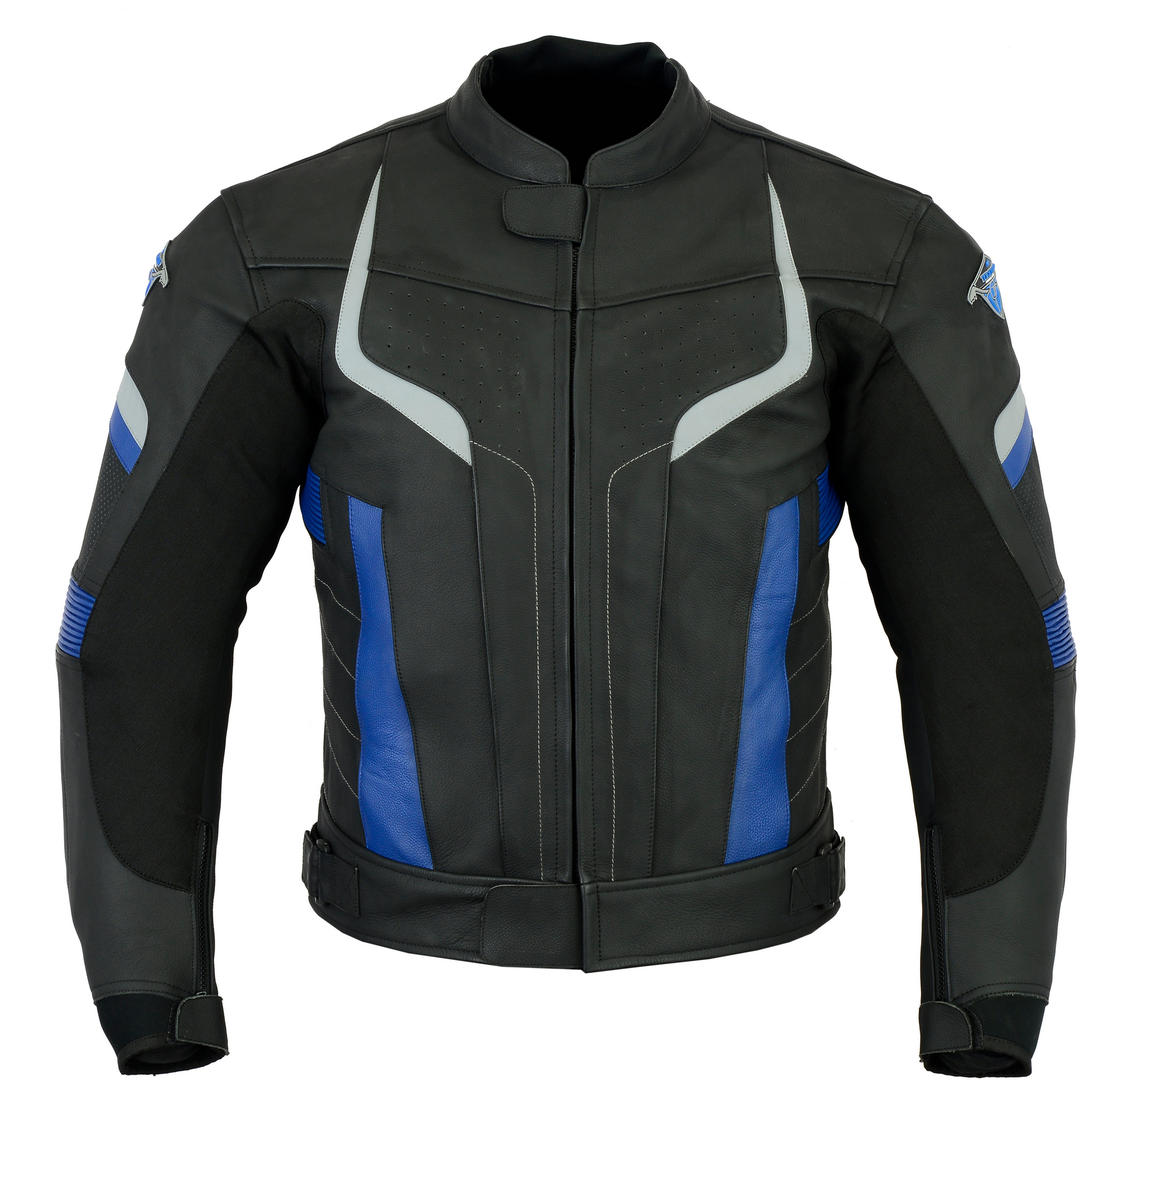 Leather Motorbike Jacket Sports Racing Motorcycle Biker With CE Approved Armour